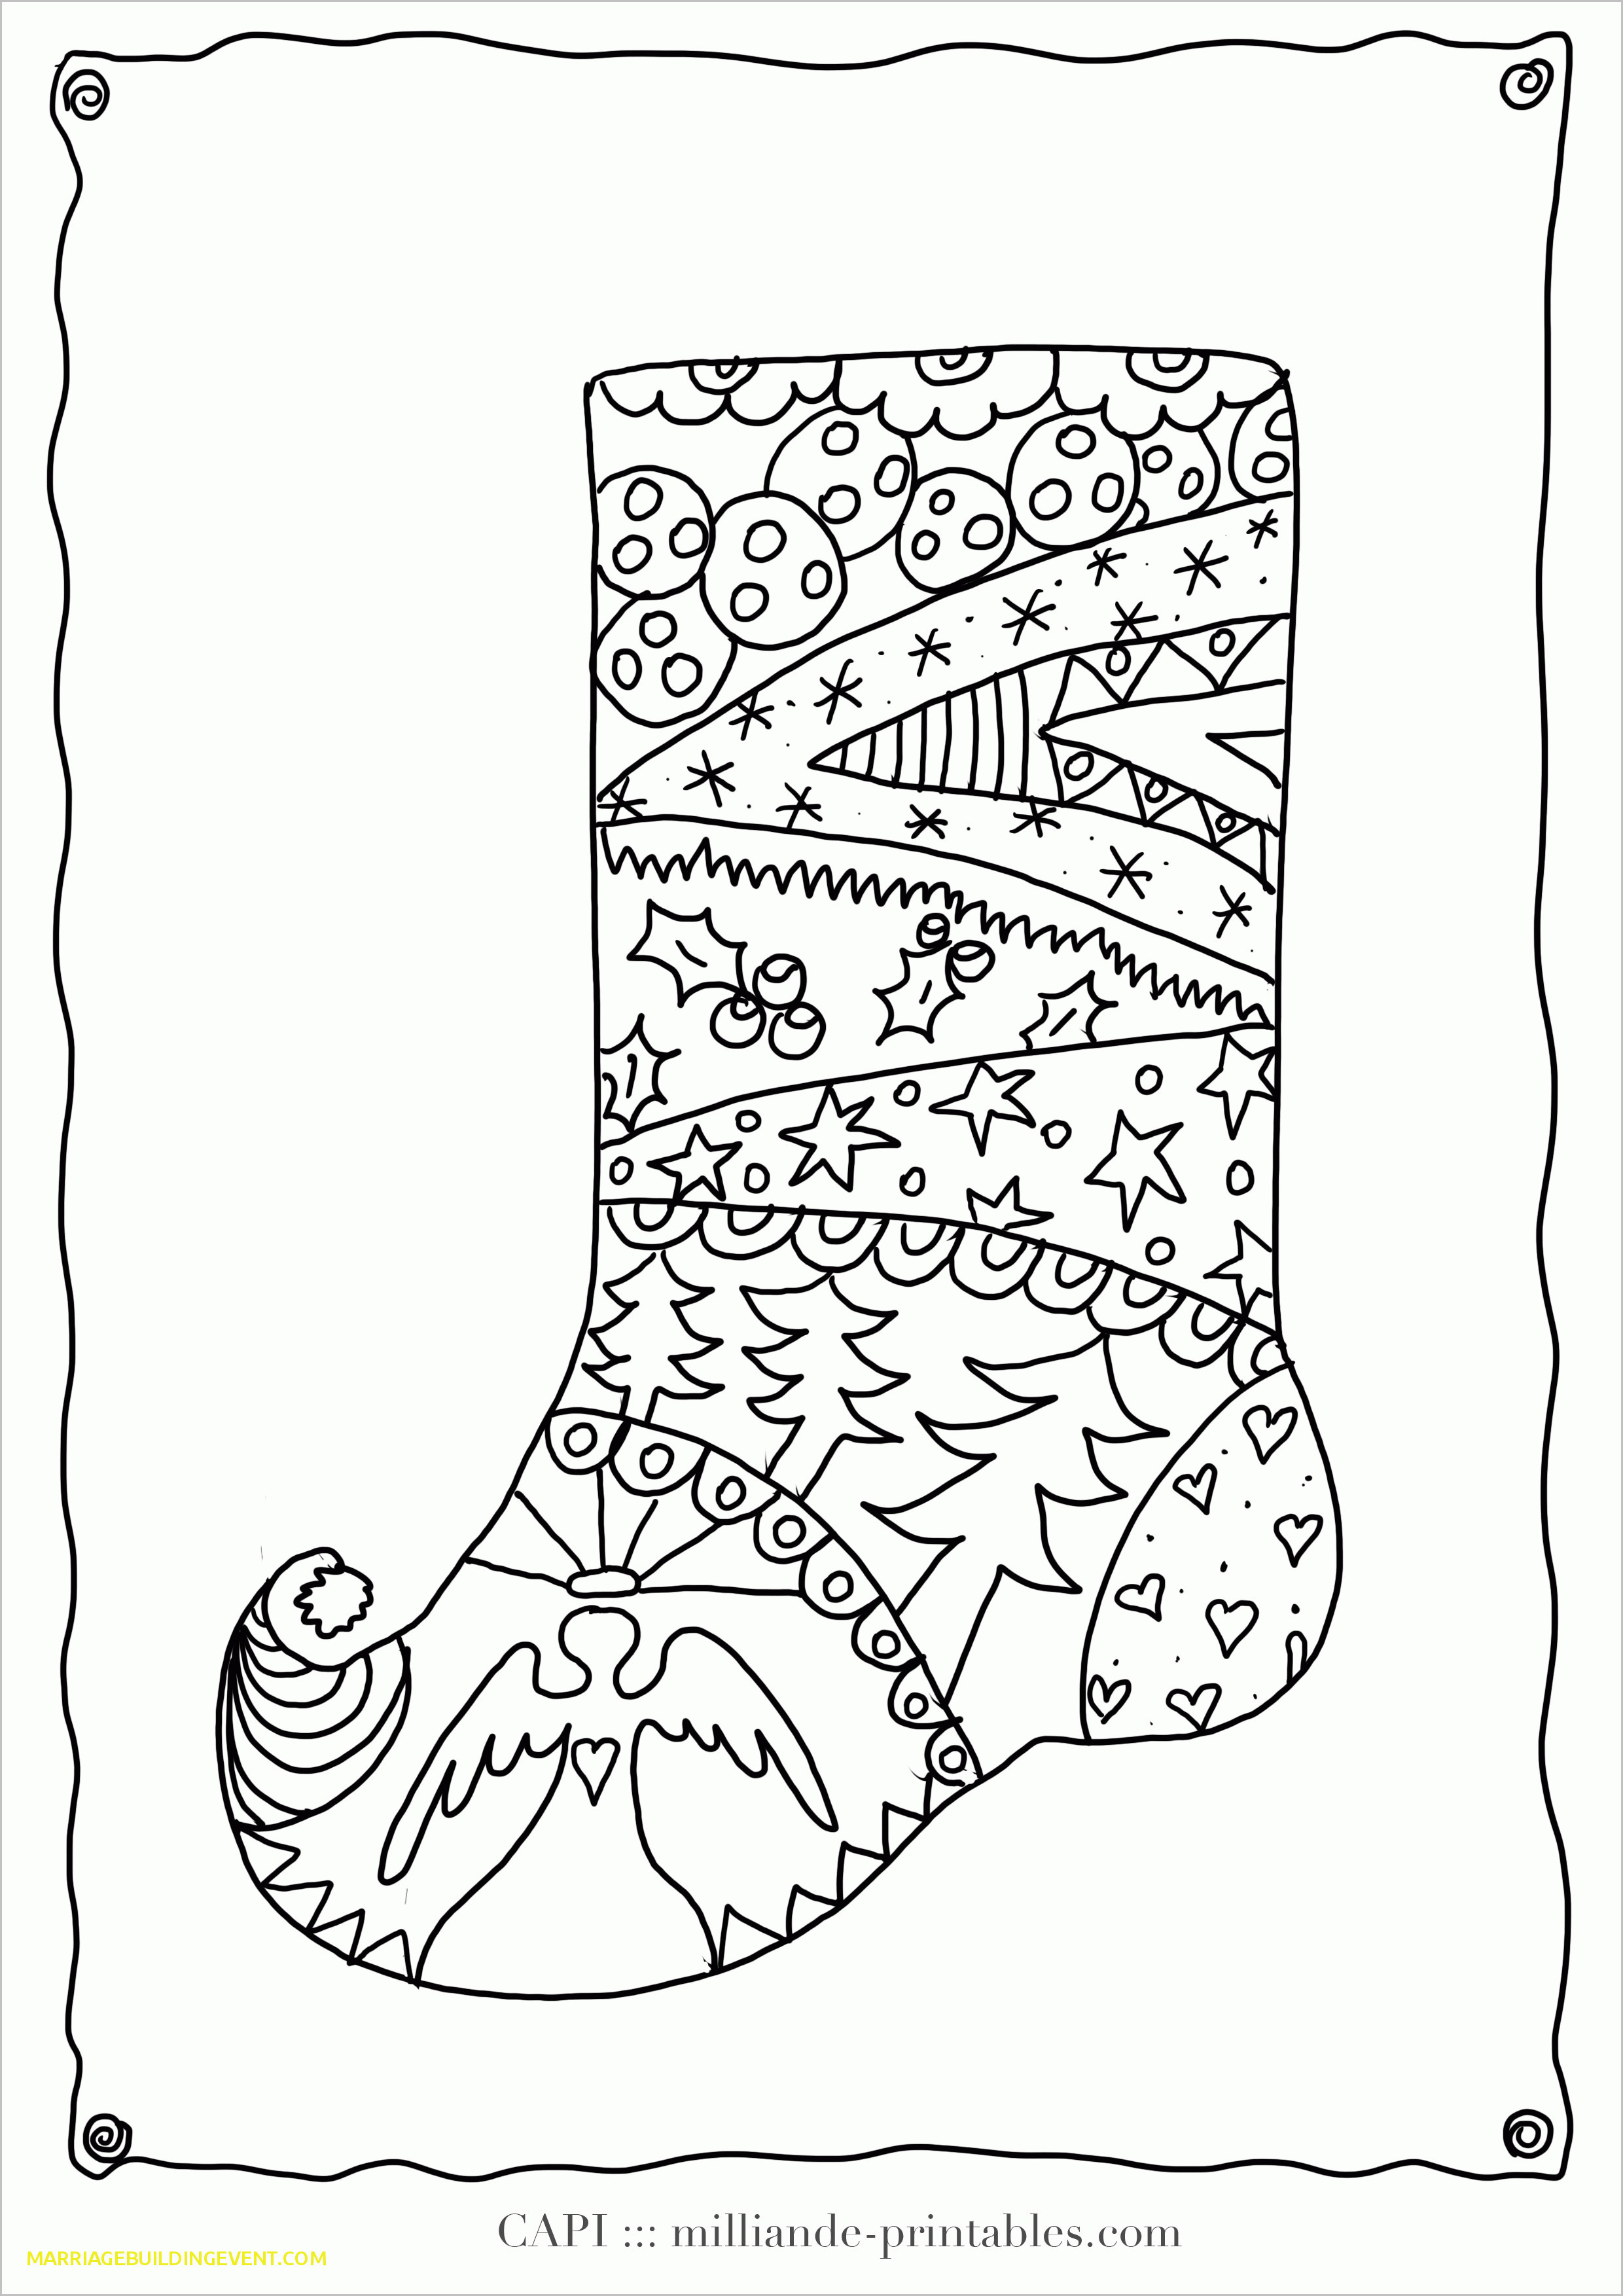 Difficult Christmas Coloring Pages For Kids  Difficult Christmas Coloring Pages for Kids Luxury Unique